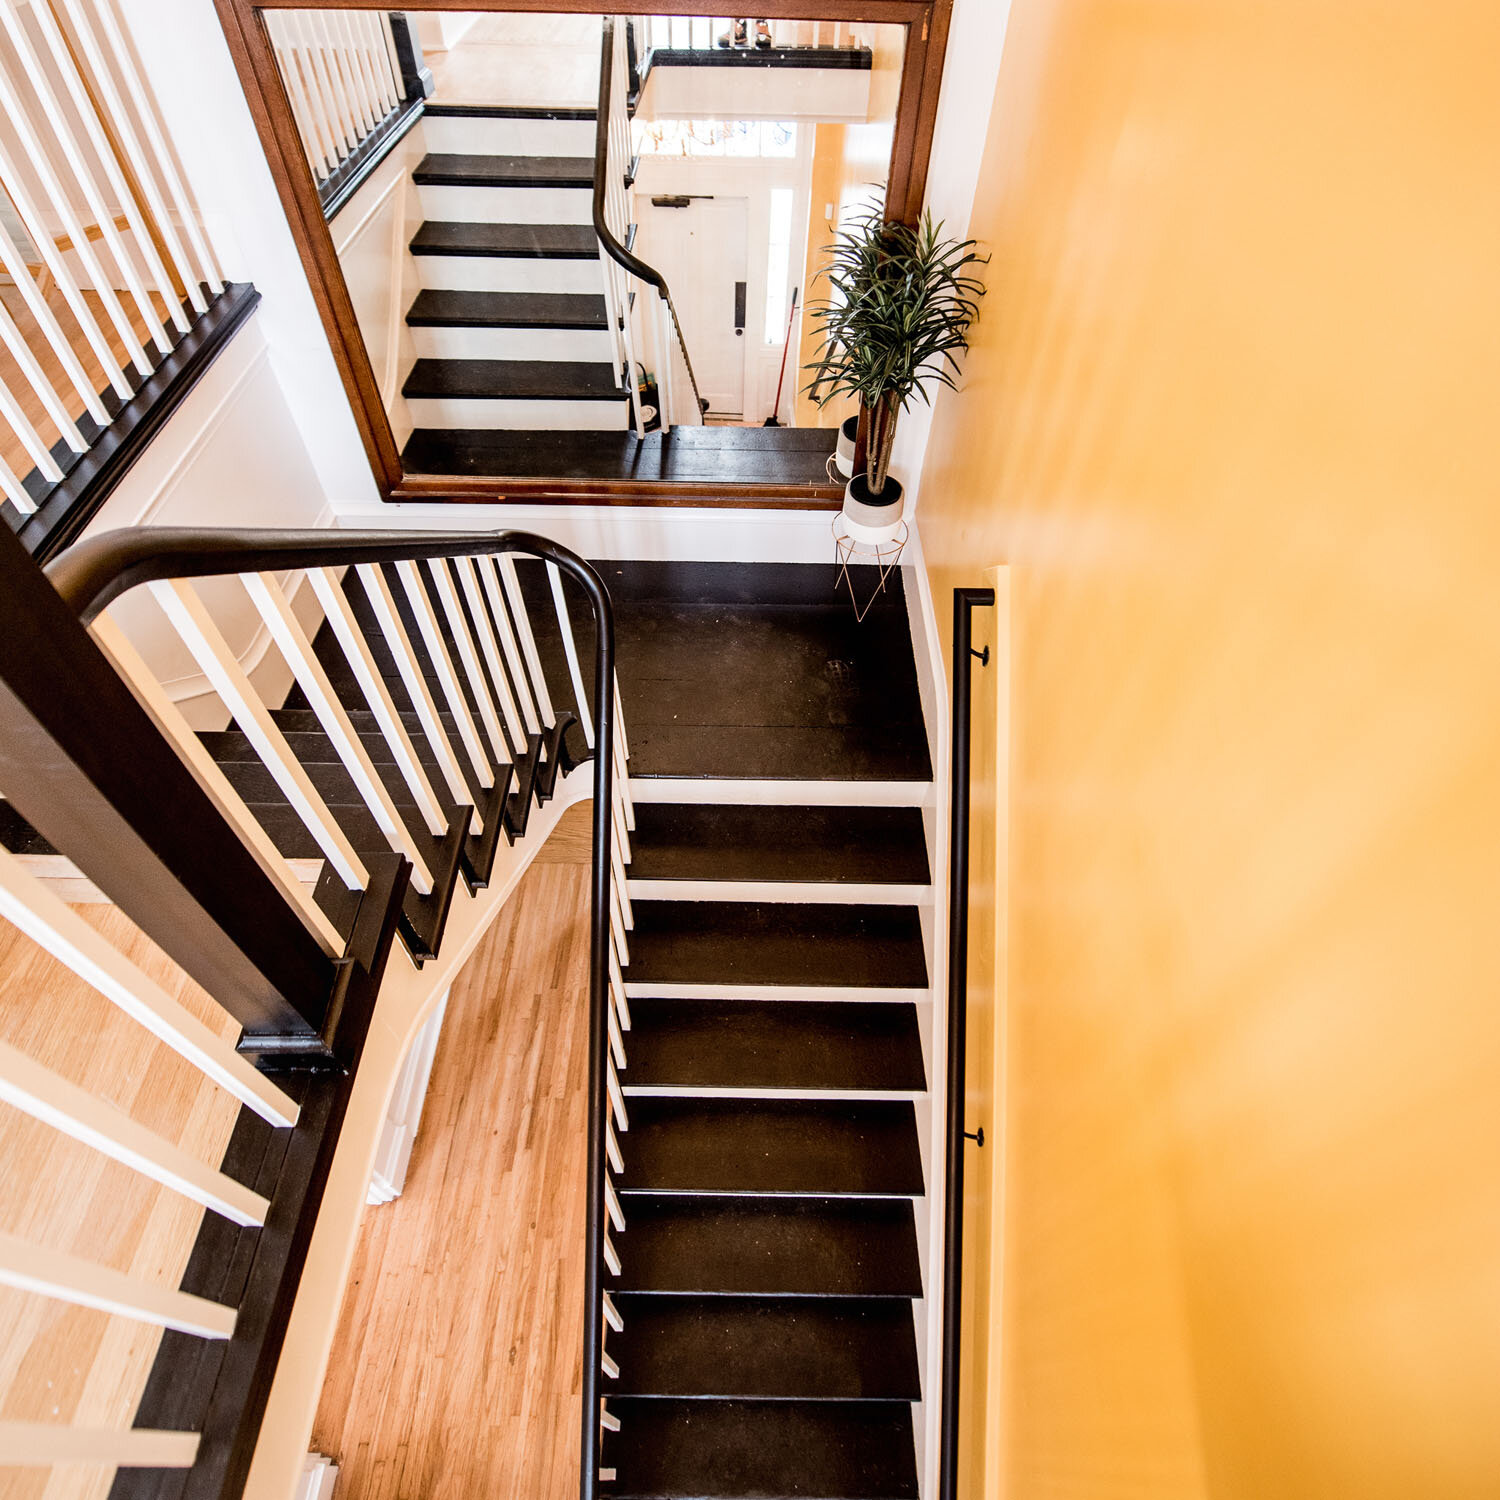 stairs-restaurant-good-burlington.jpg